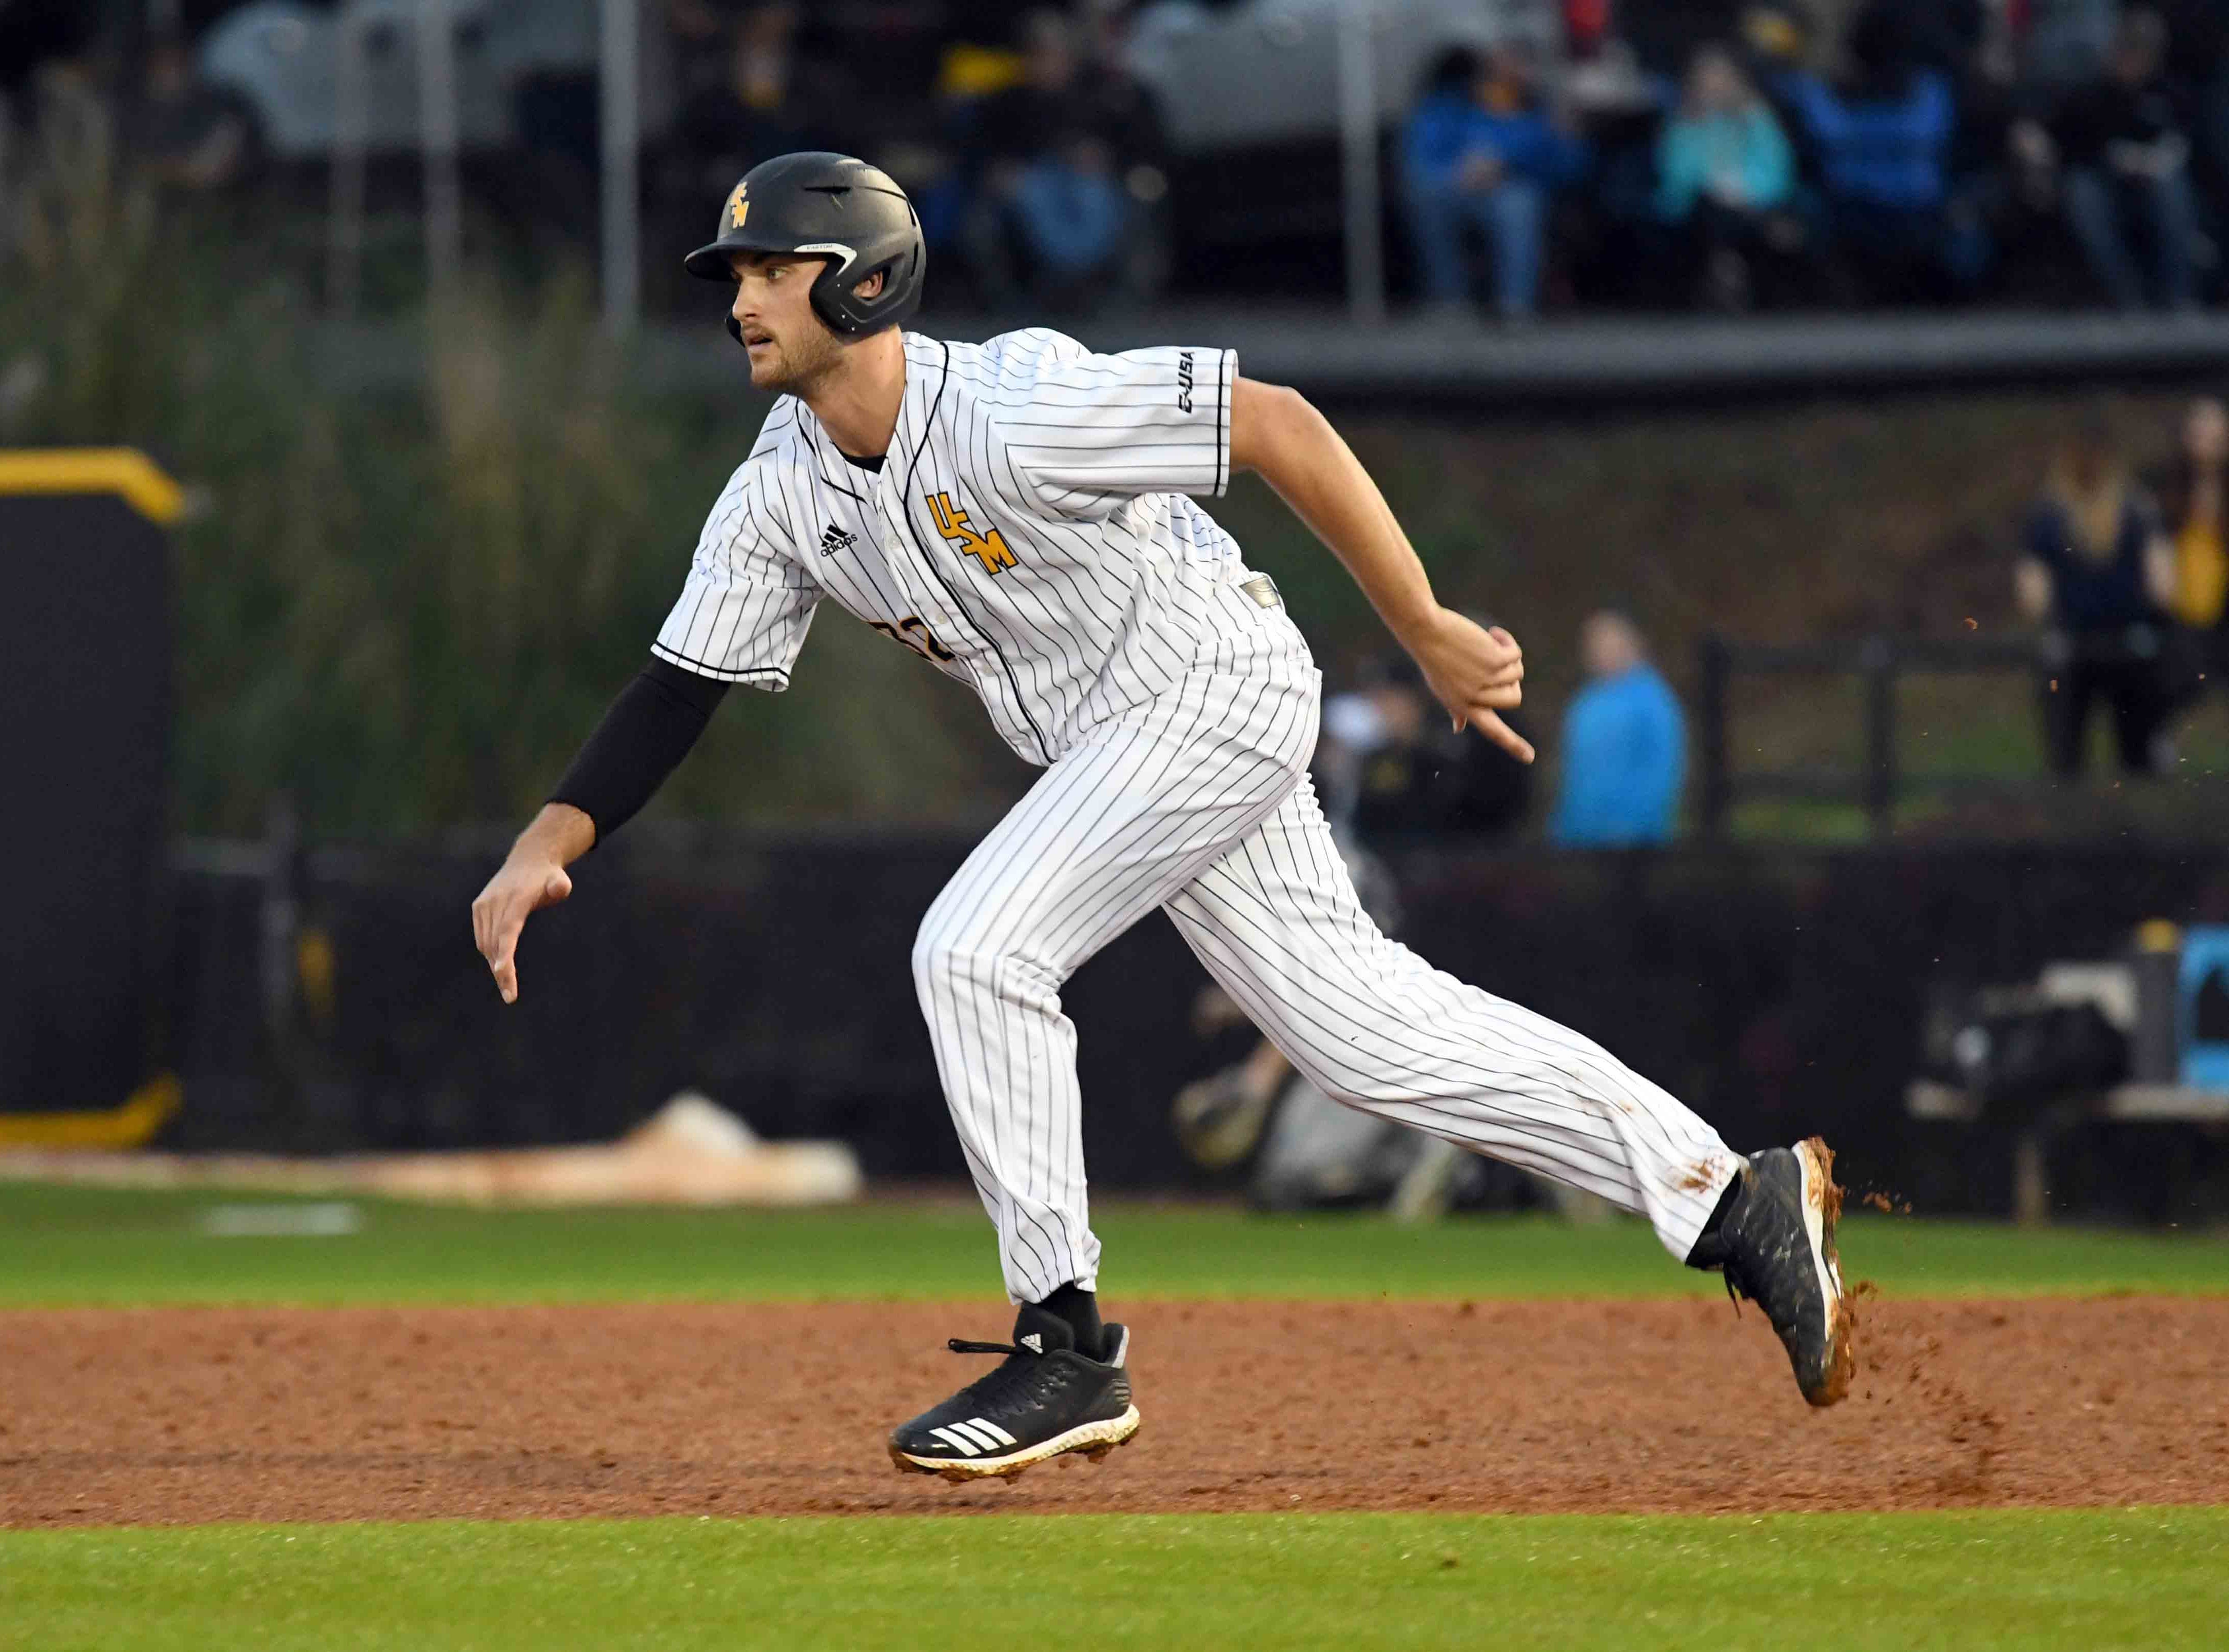 Southern Miss' Matt Wallner runs to second base in the season opener against Purdue on Friday, February 15, 2019.